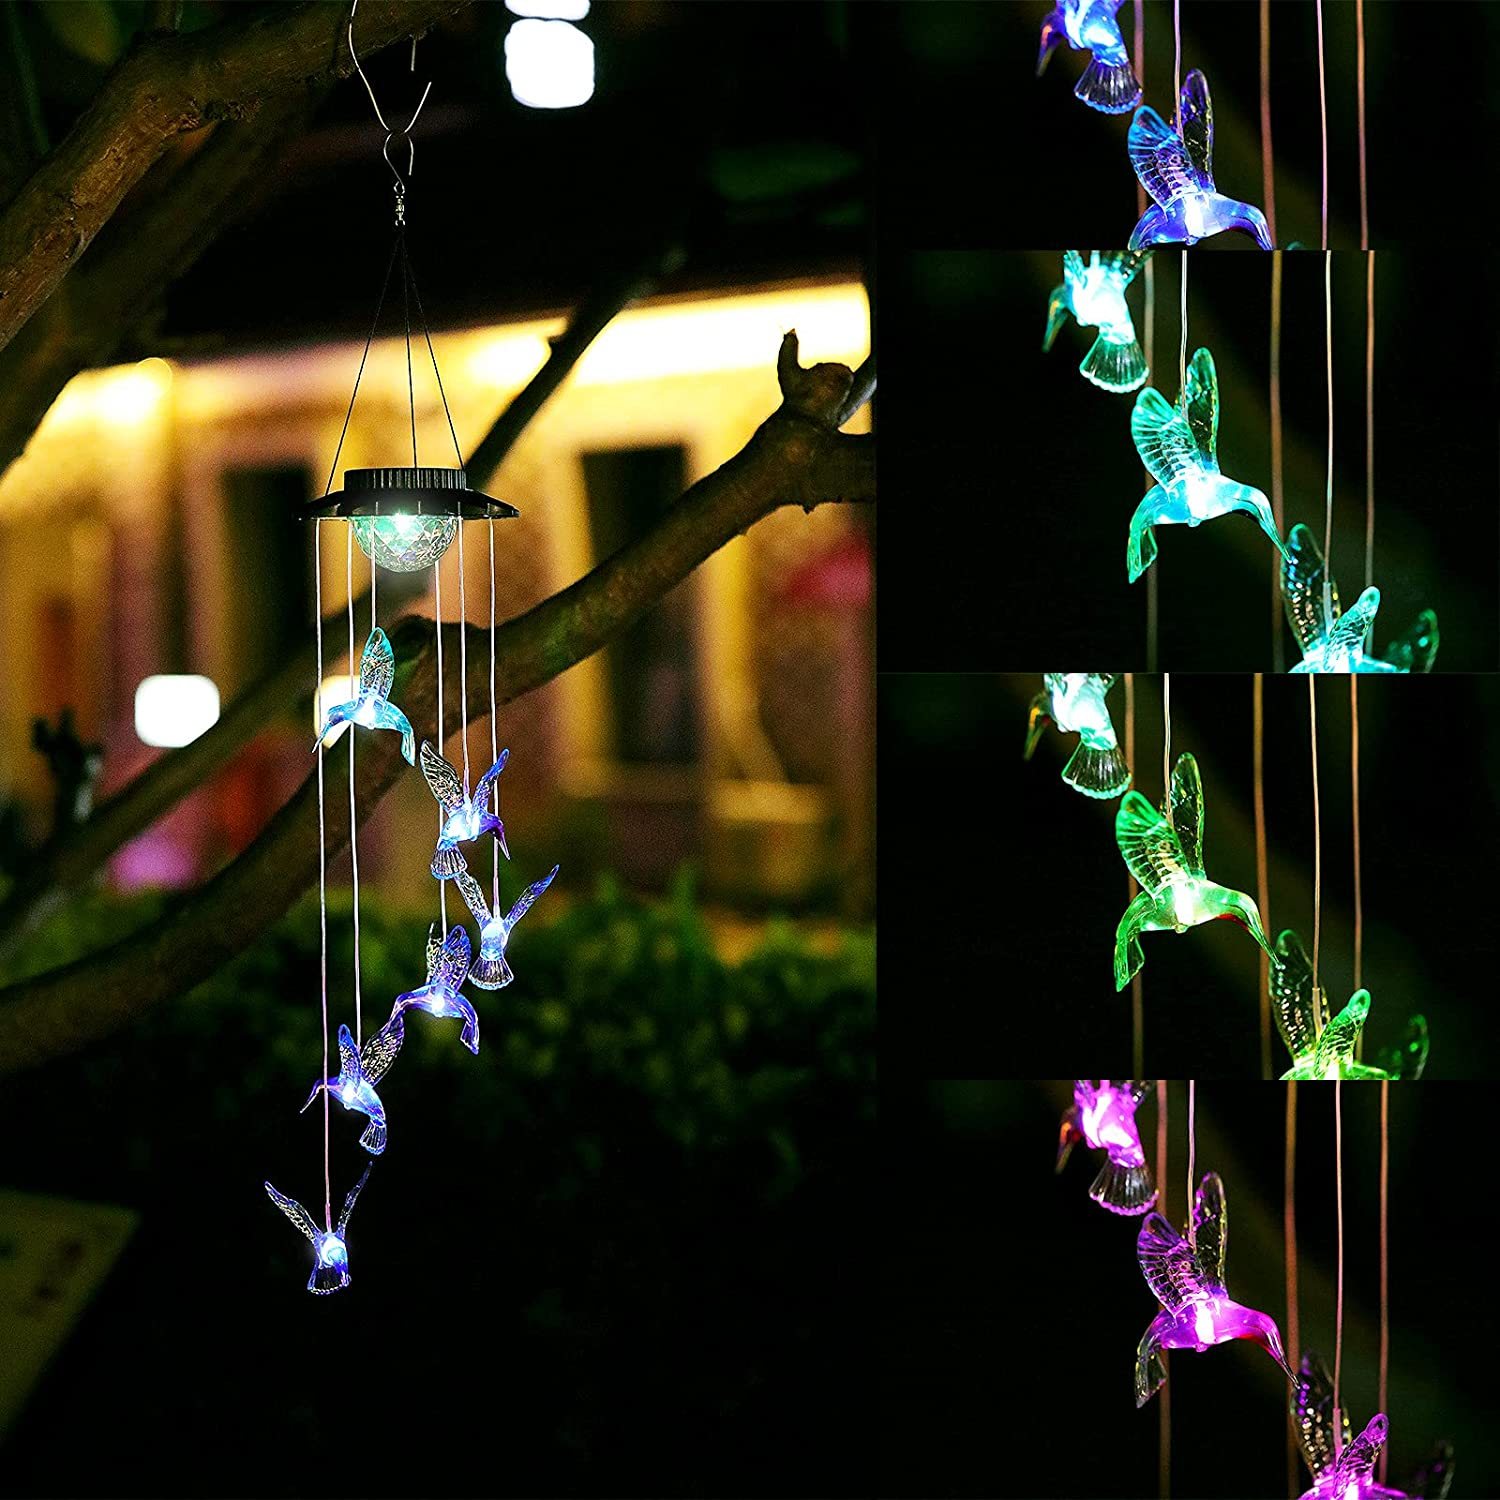 YJFWAL Solar Wind Chimes,Upgraded Hummingbird Wind Chimes Color Changing Outdoor/Indoor Romantic Décor for Yard,Party,Patio,Garden,Gifts for mom/momgrandma Gifts/Birthday Gifts for mom.